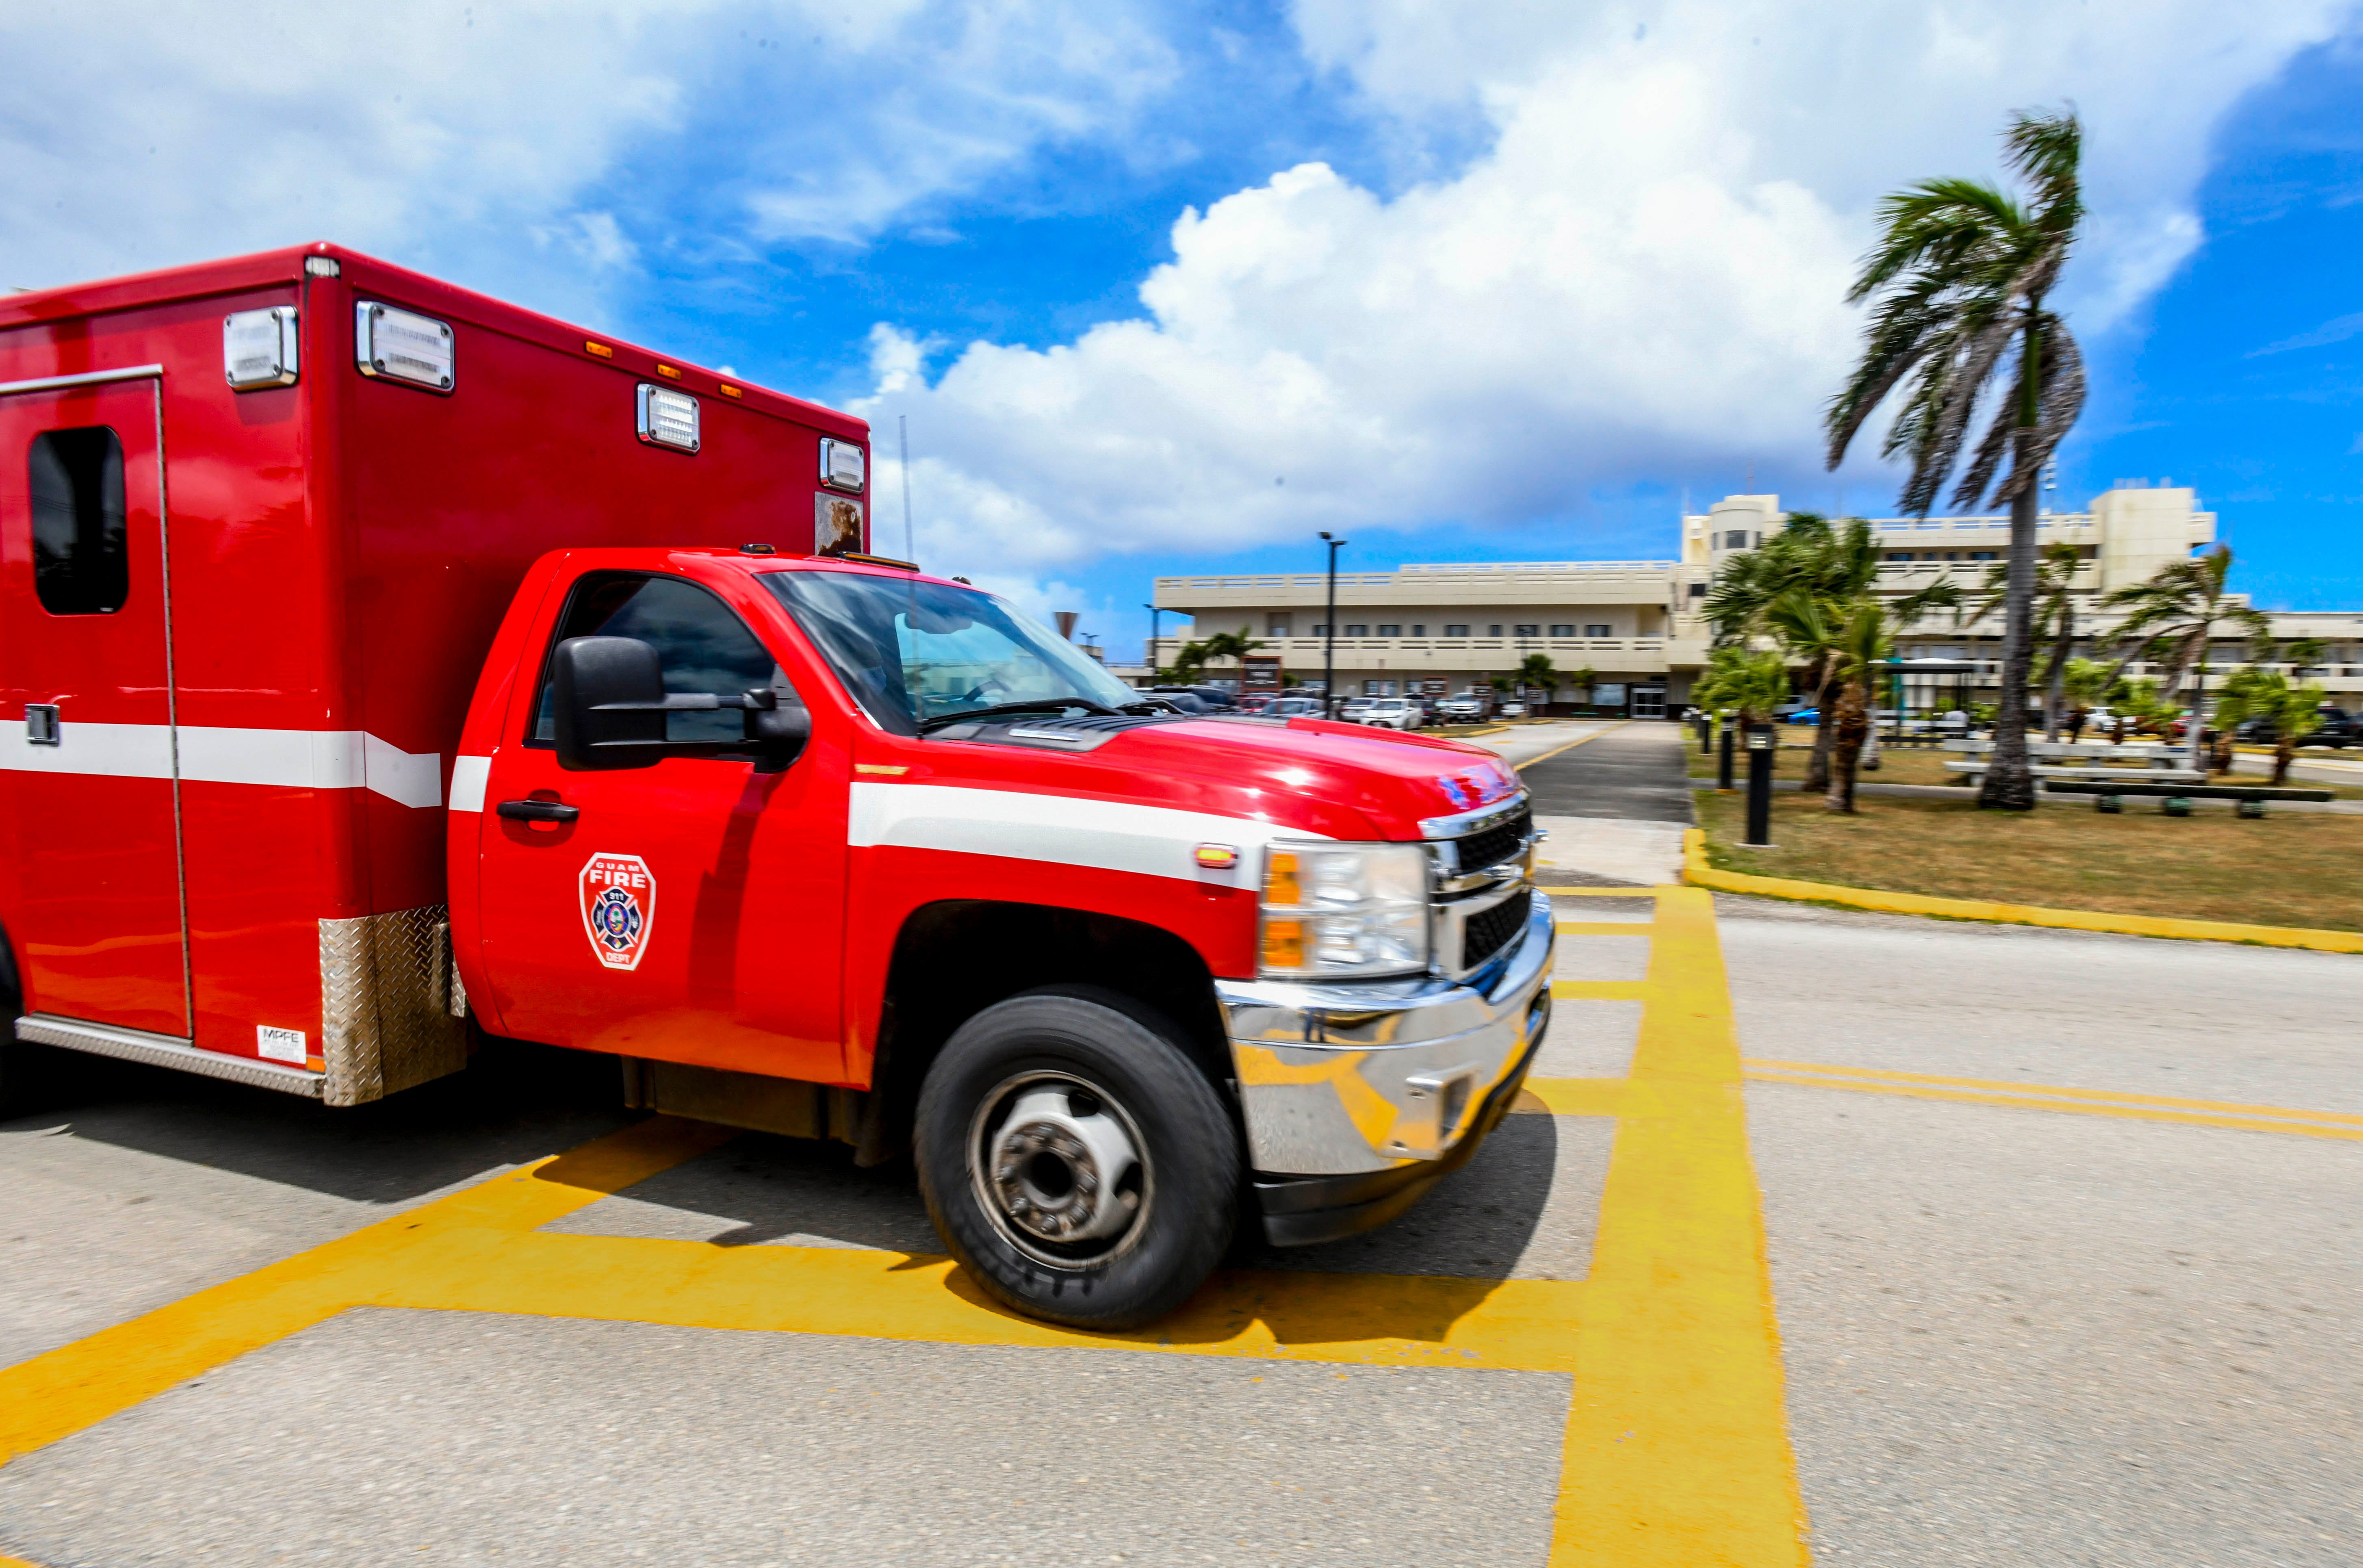 A Guam Fire Department ambulance approaches the Guam Memorial Hospital on Friday, March 13, 2020. The hospital announced it has amended its visitors policy effective Sundayin light of the public health crisis.